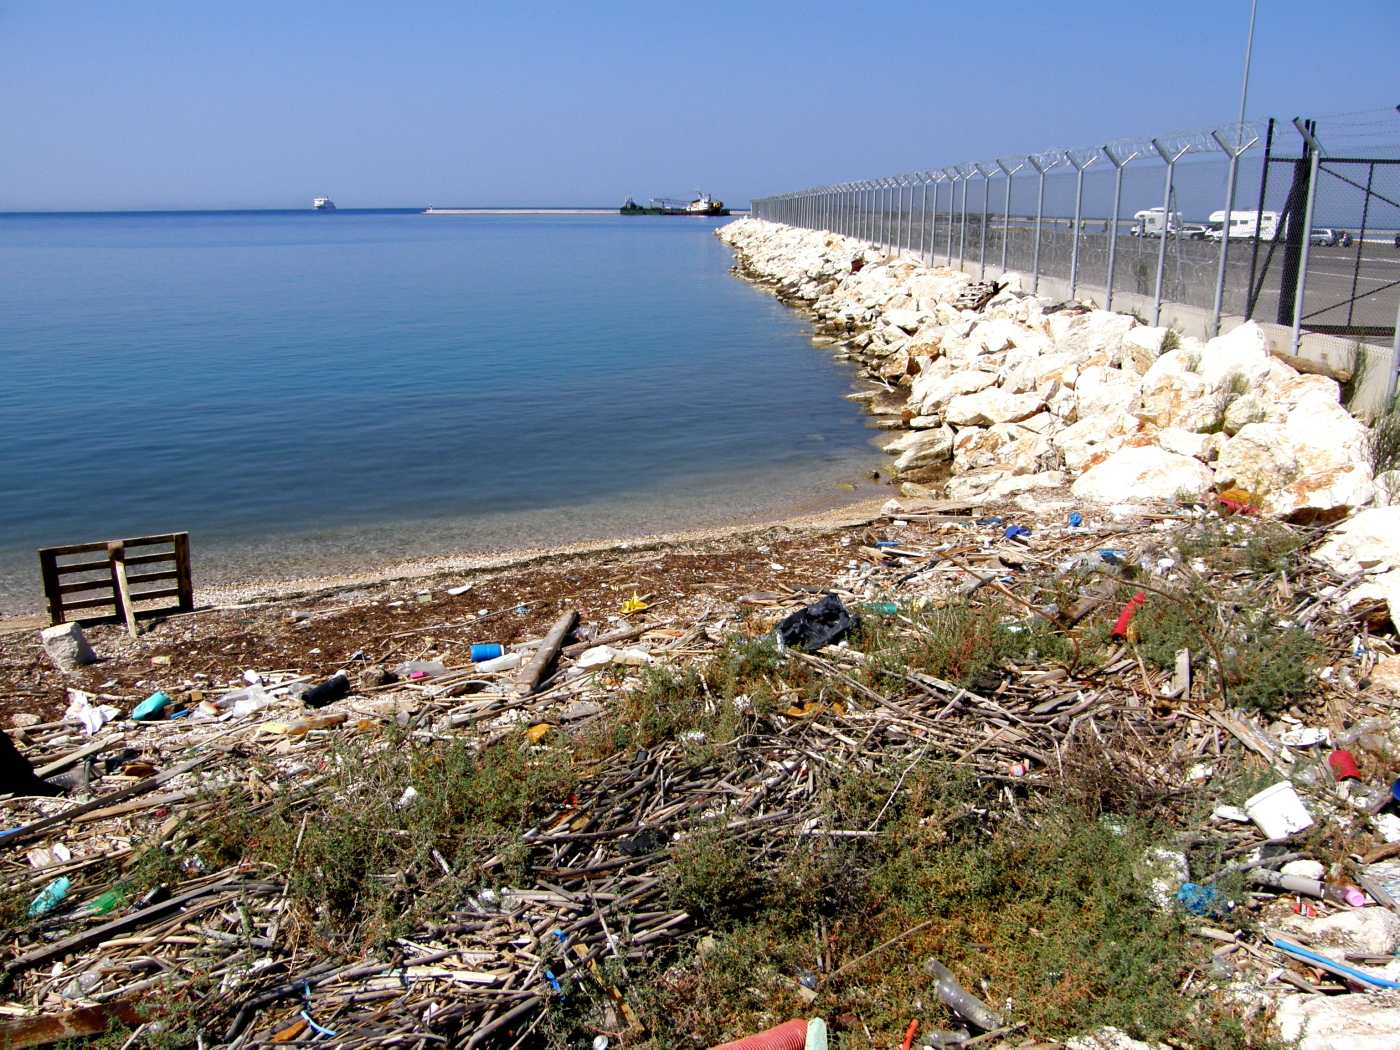 patras south port south End 100911 A